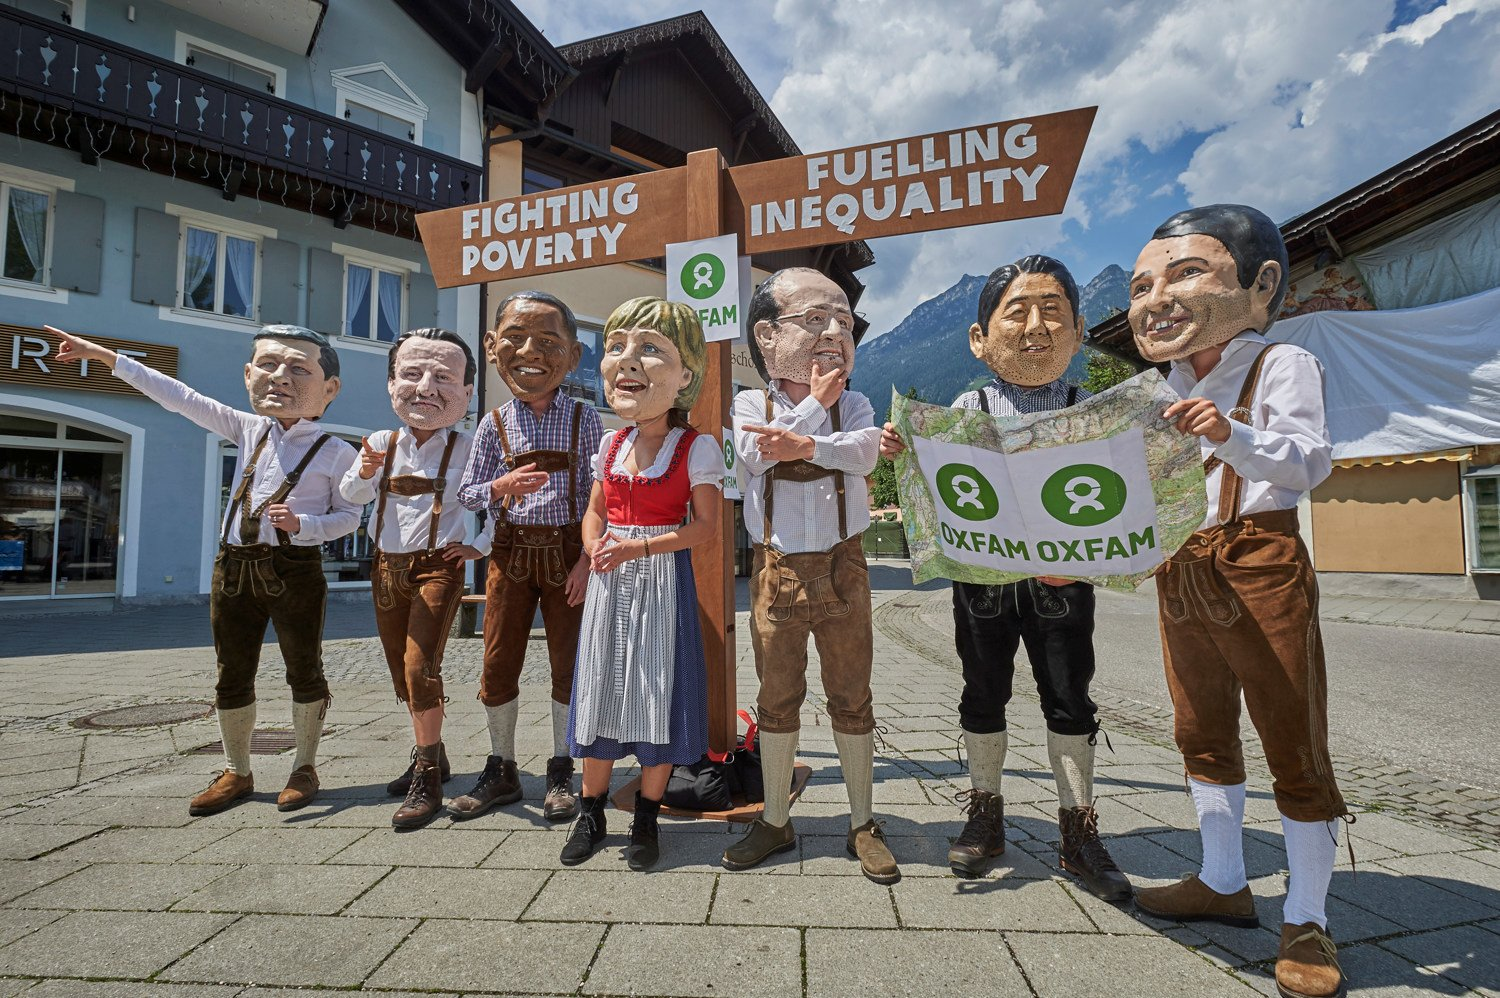 G7 leaders depicted with huge heads and kitted out with walking boots and maps must get on the right path to overcome poverty and inequality.